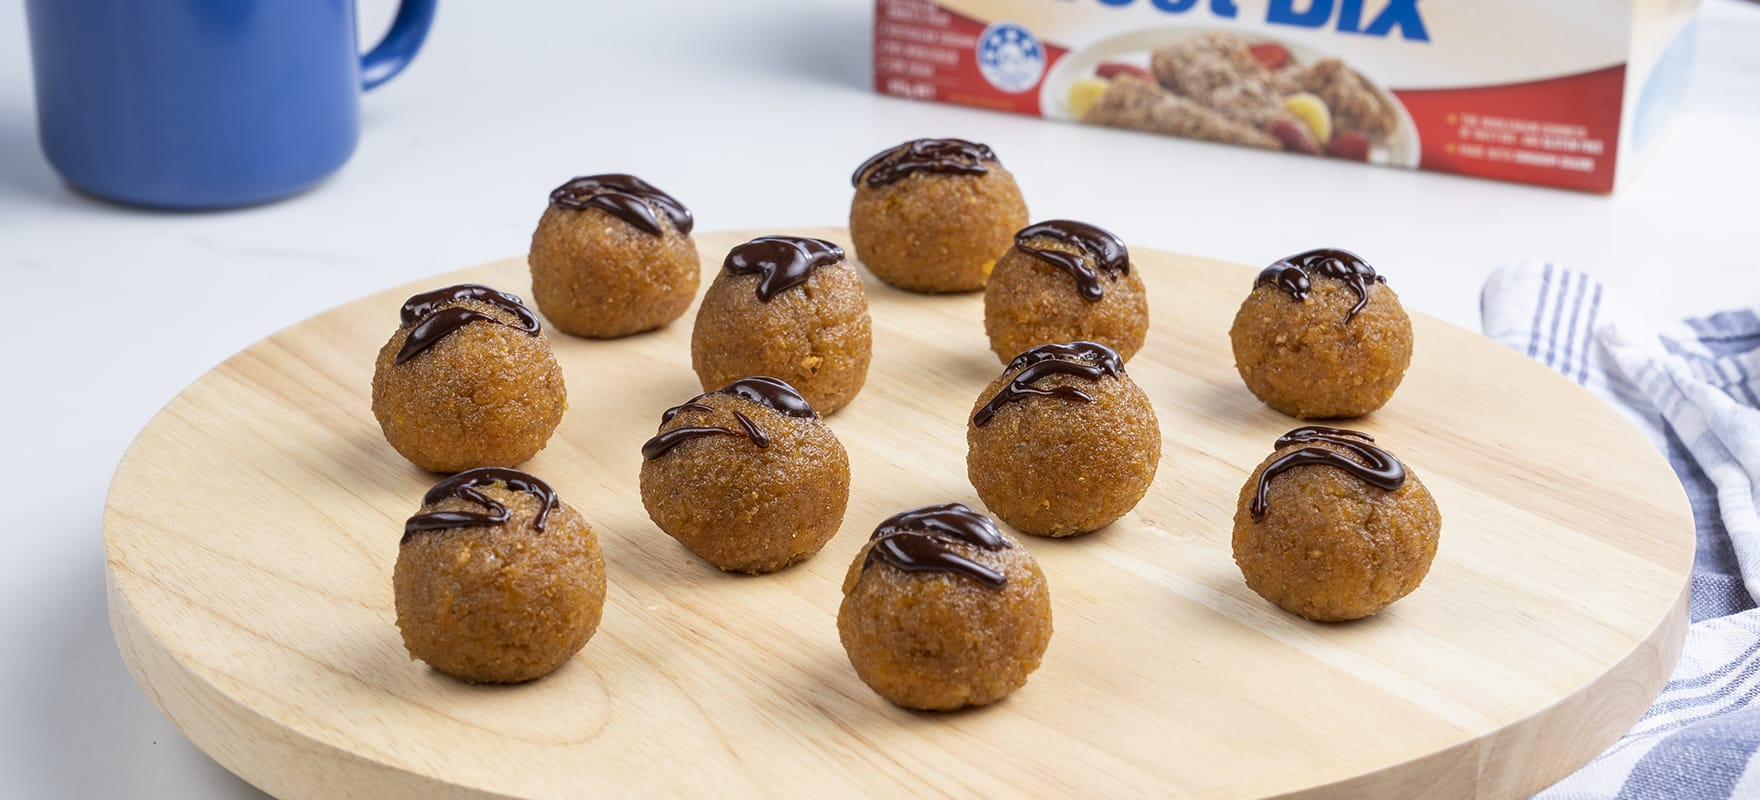 Gluten free apricot and cranberry truffles image 1